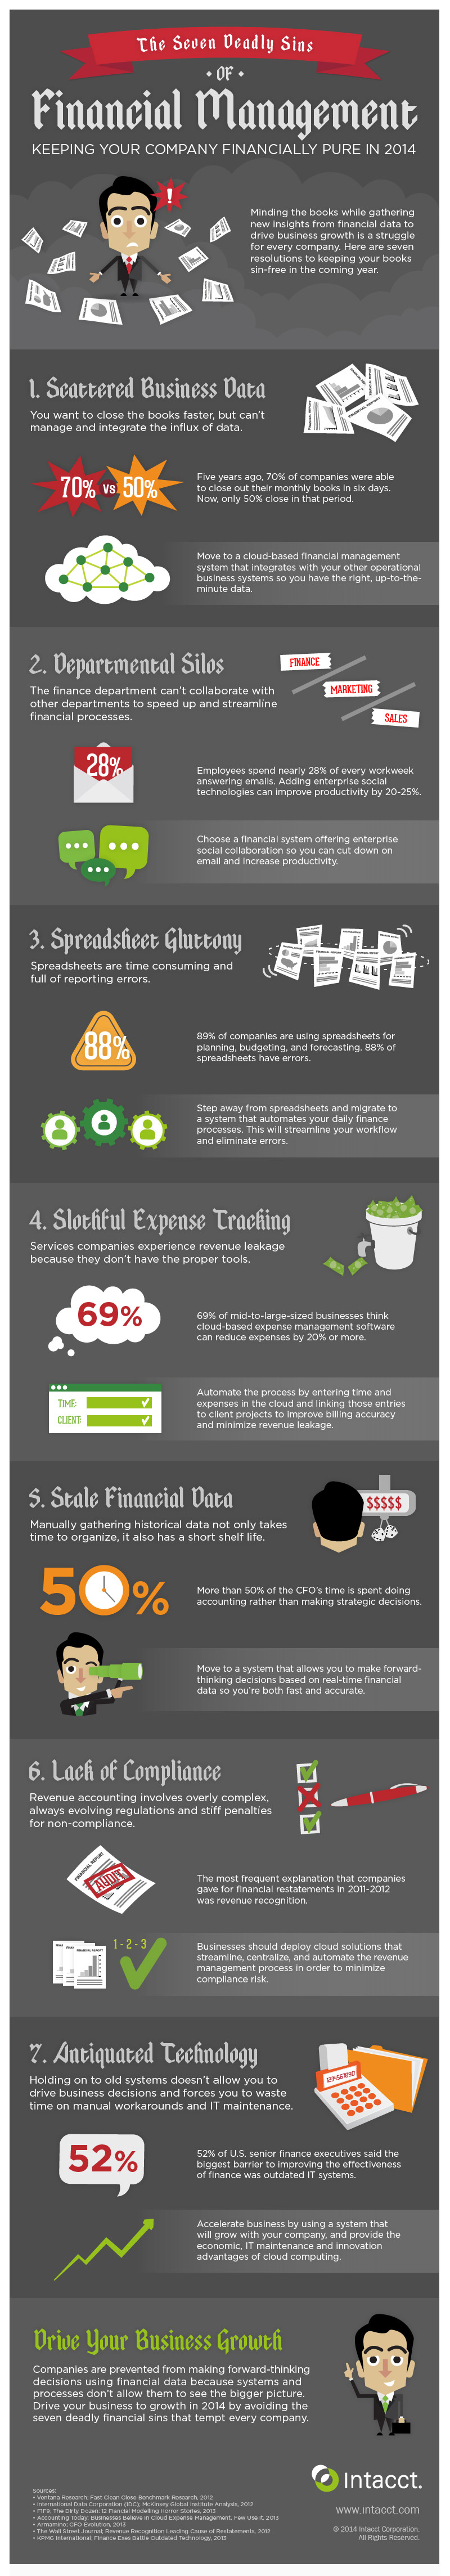 7-deadly-sins-financial-management-infographic